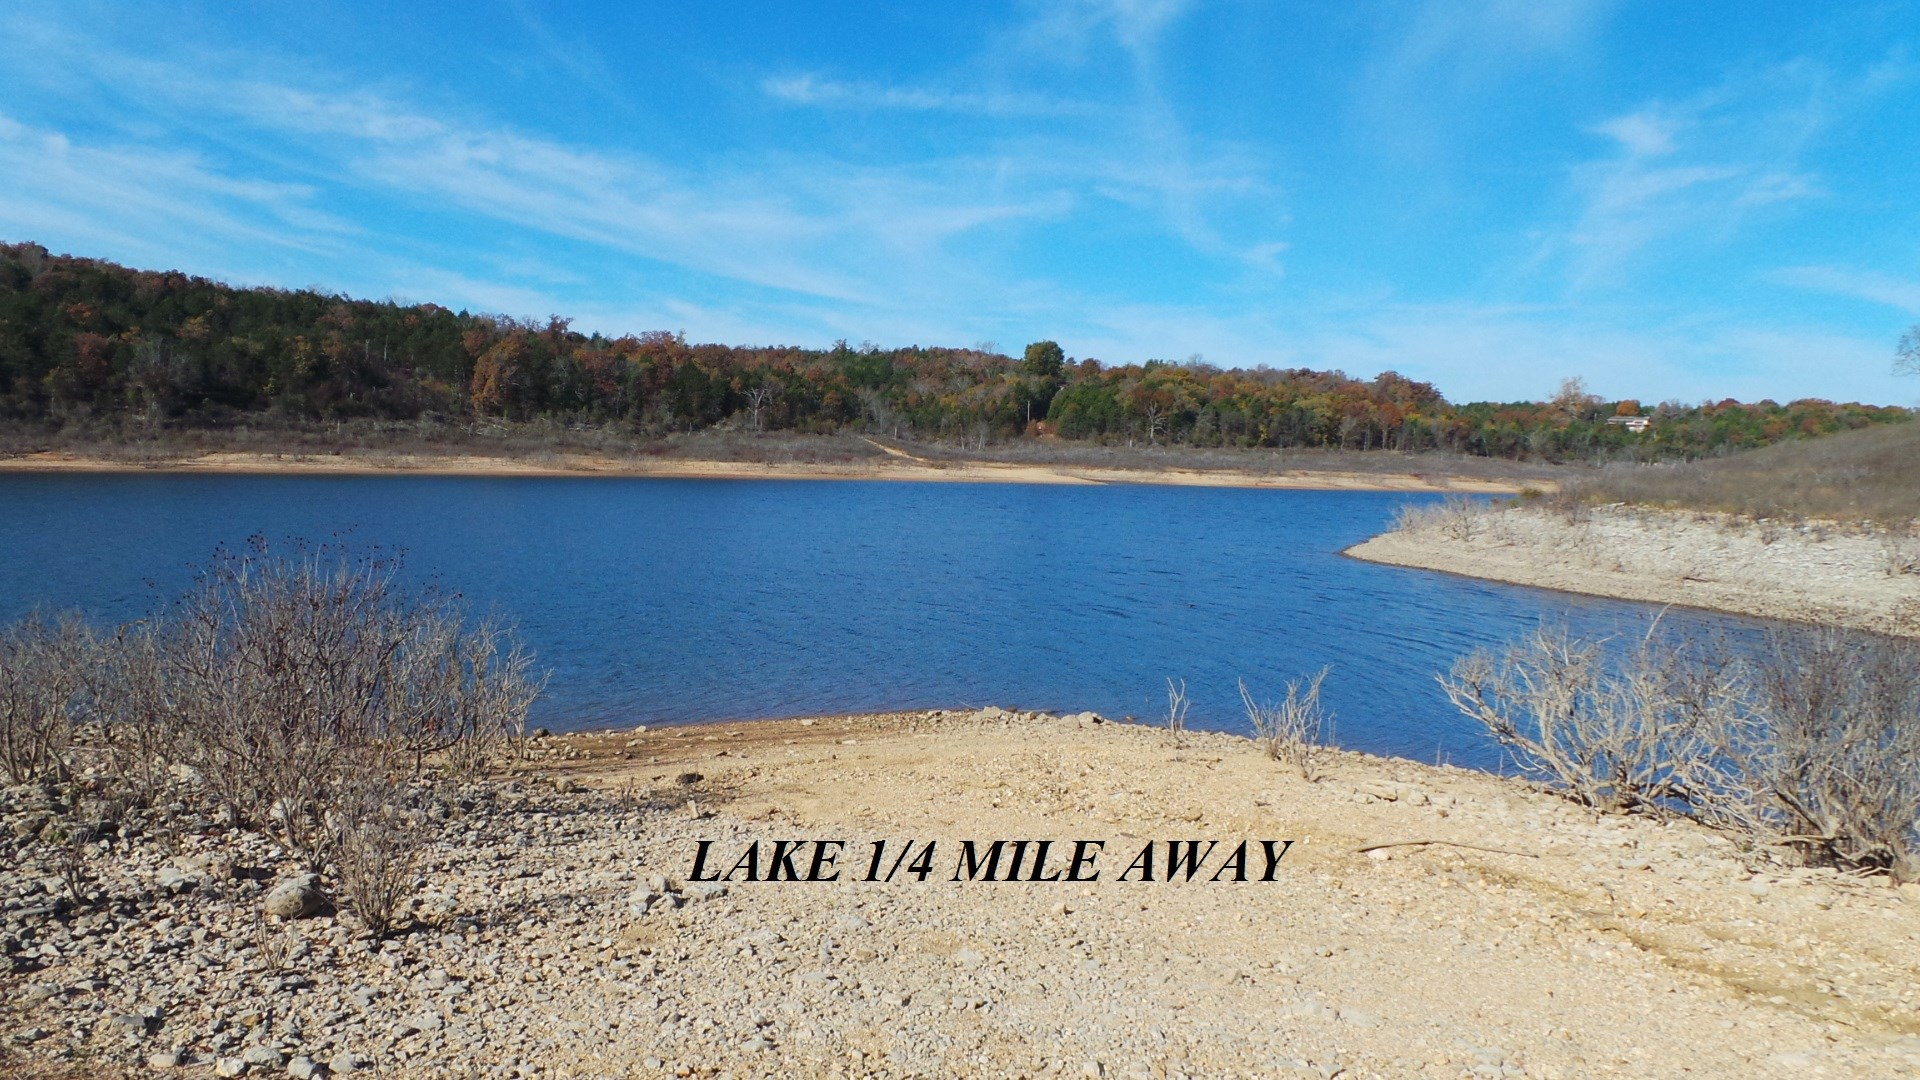 BULL SHOALS LAKE LAND FOR SALE IN THE OZARKS